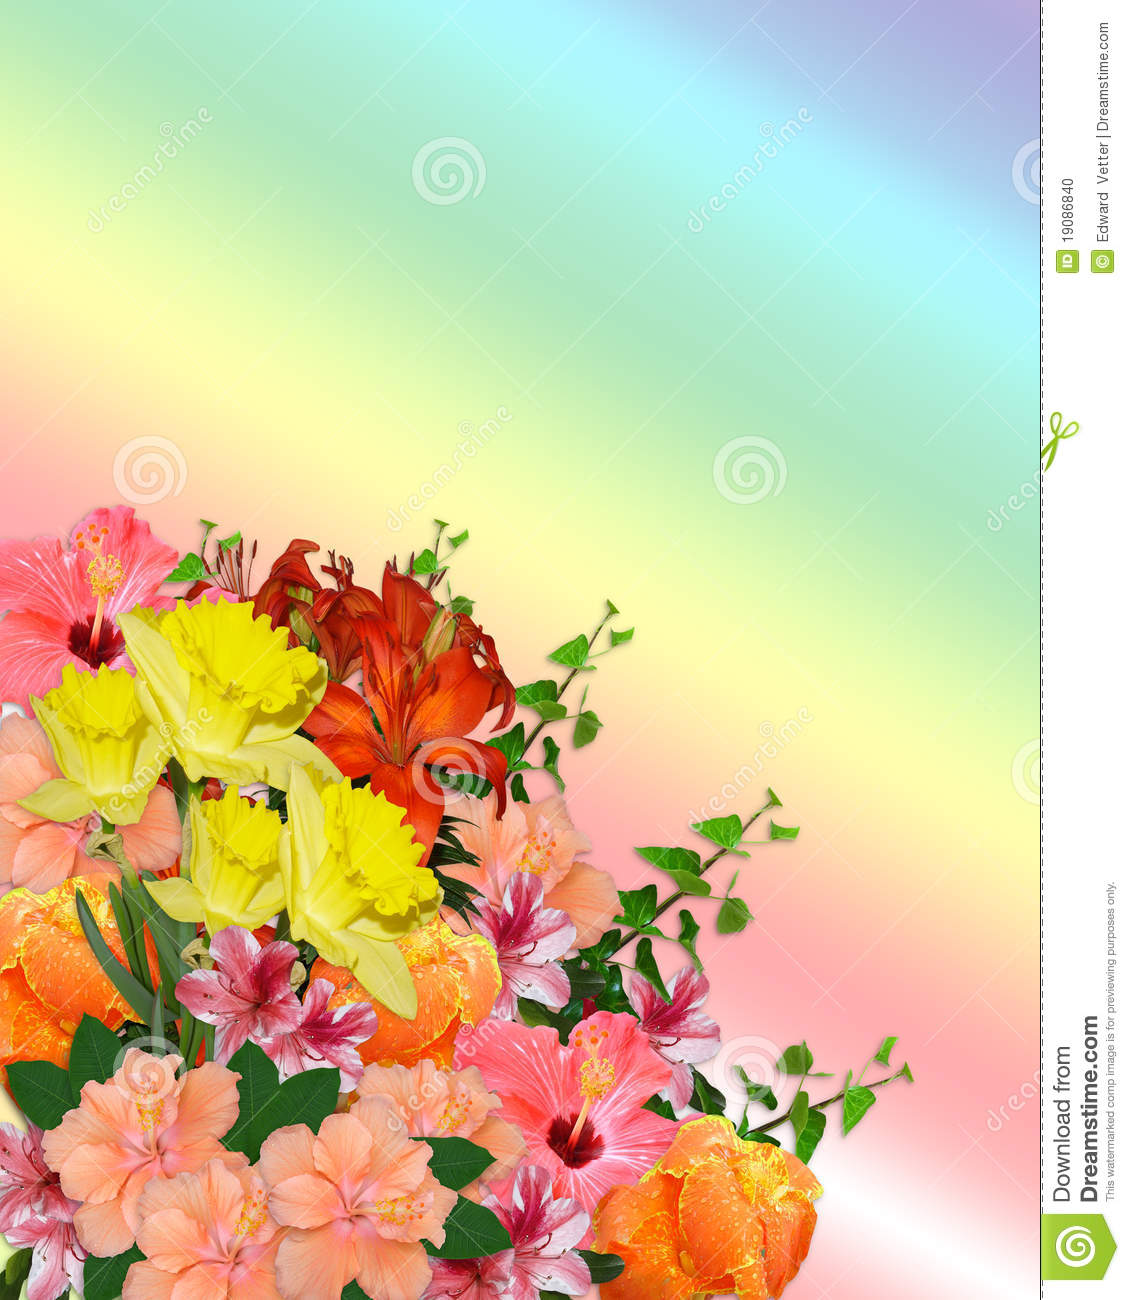 Image and illustration composition of spring flowers bouquet for